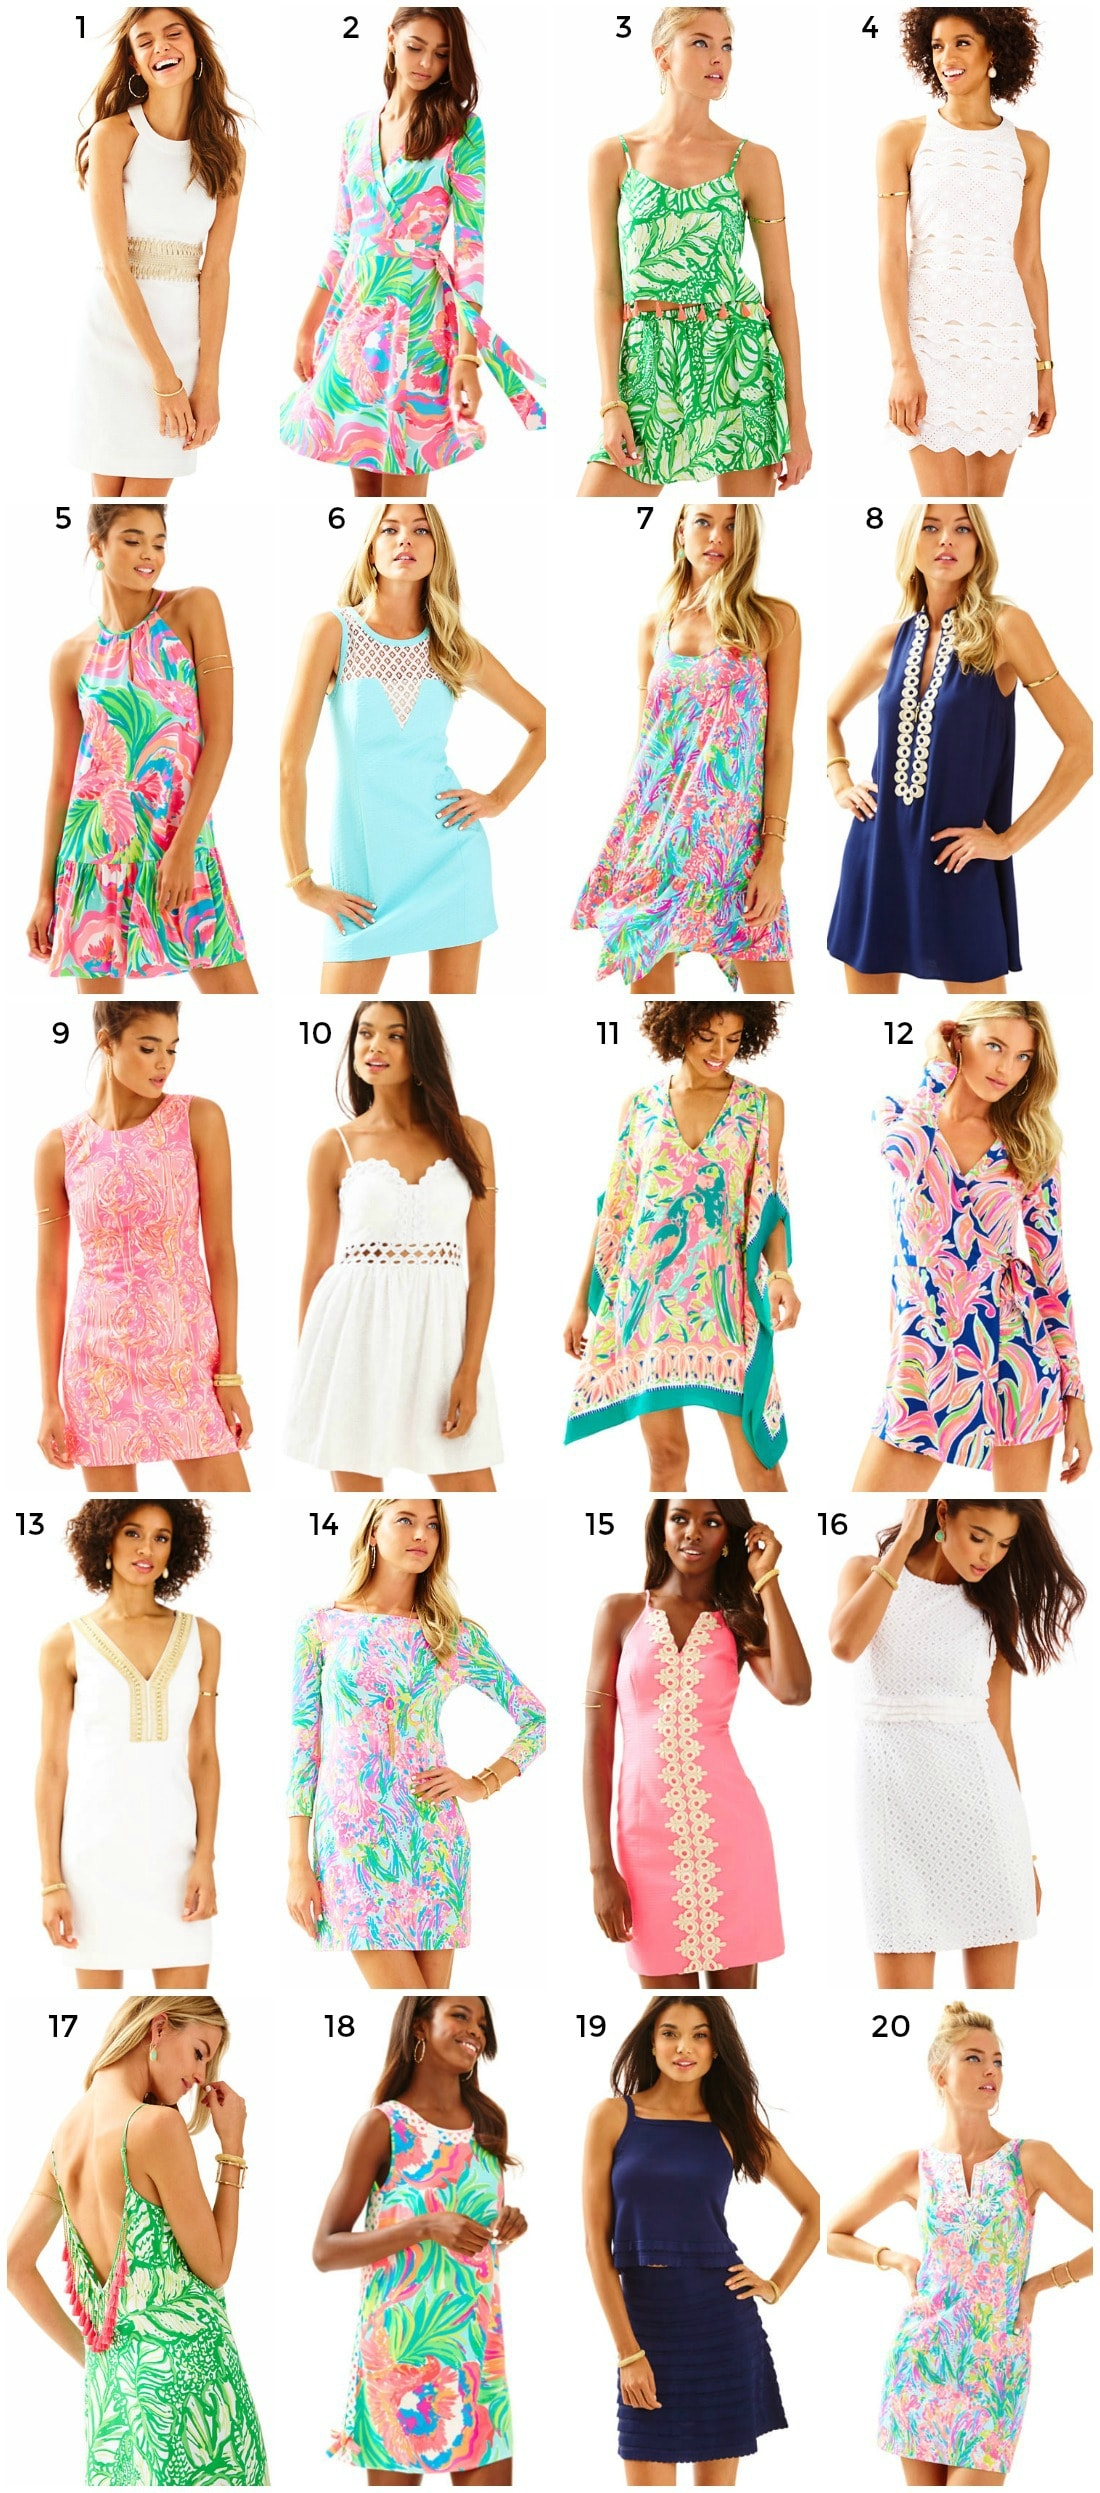 d0b30765569 Lilly Pulitzer Spring Collection + New Arrivals + Cutest Lilly Pulitzer  Dresses | Florida Style Blogger